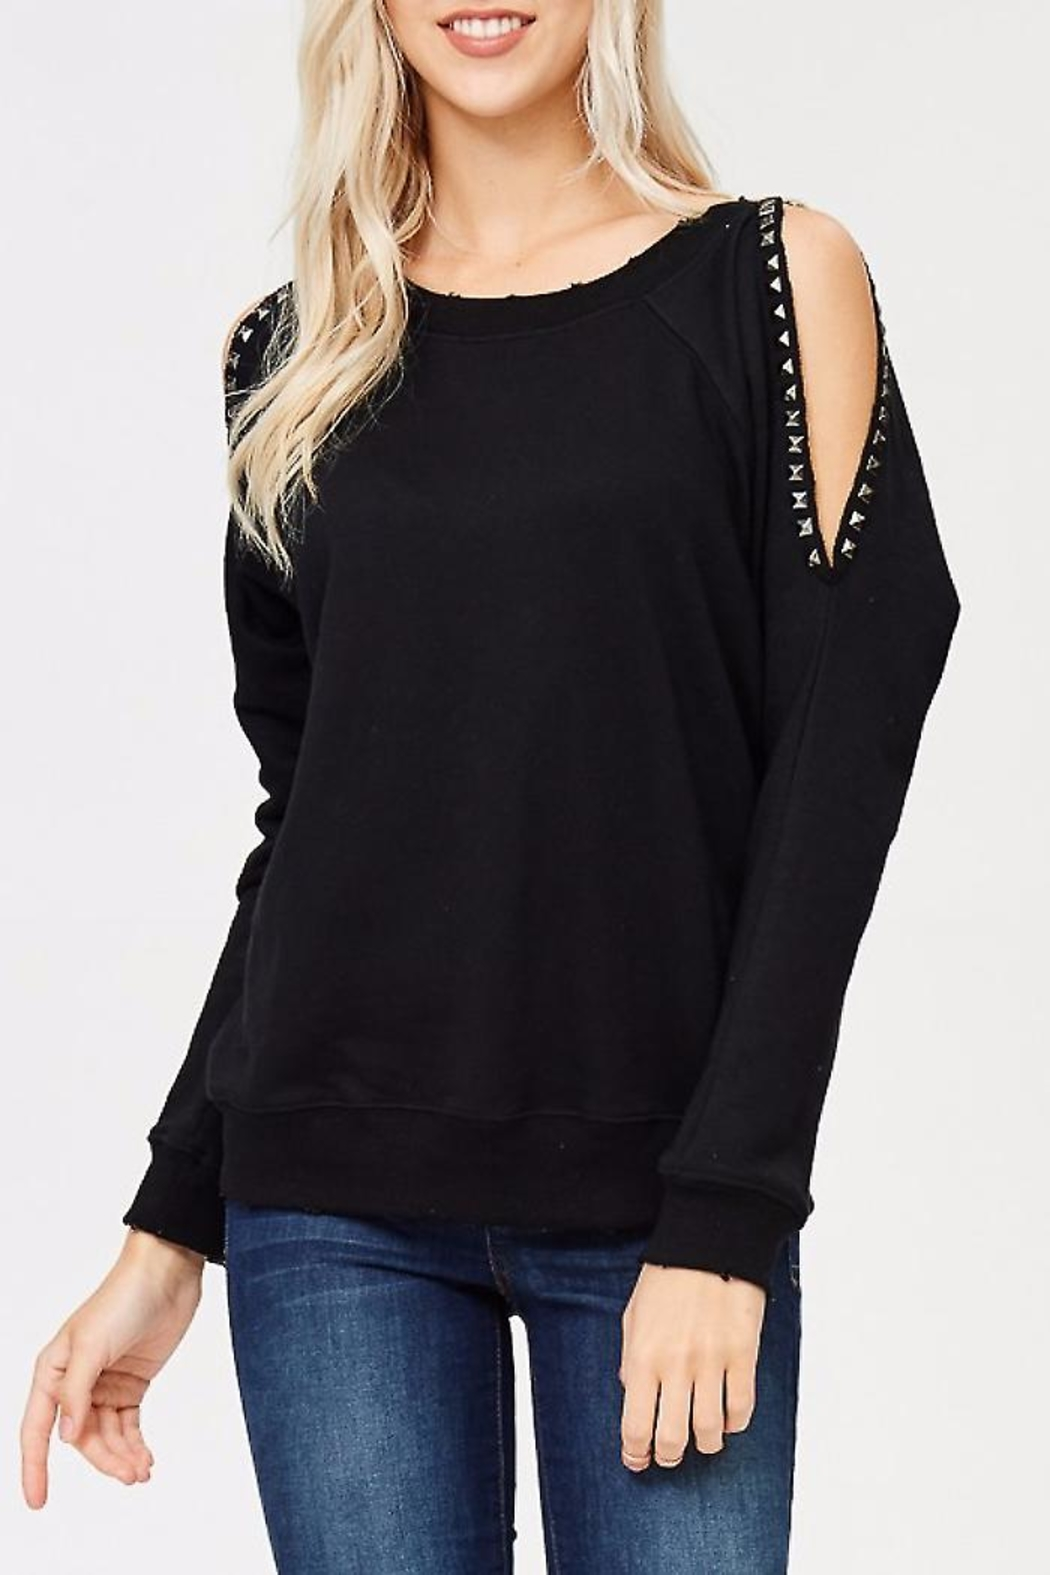 People Outfitter Studded Sweat Shirt - Main Image